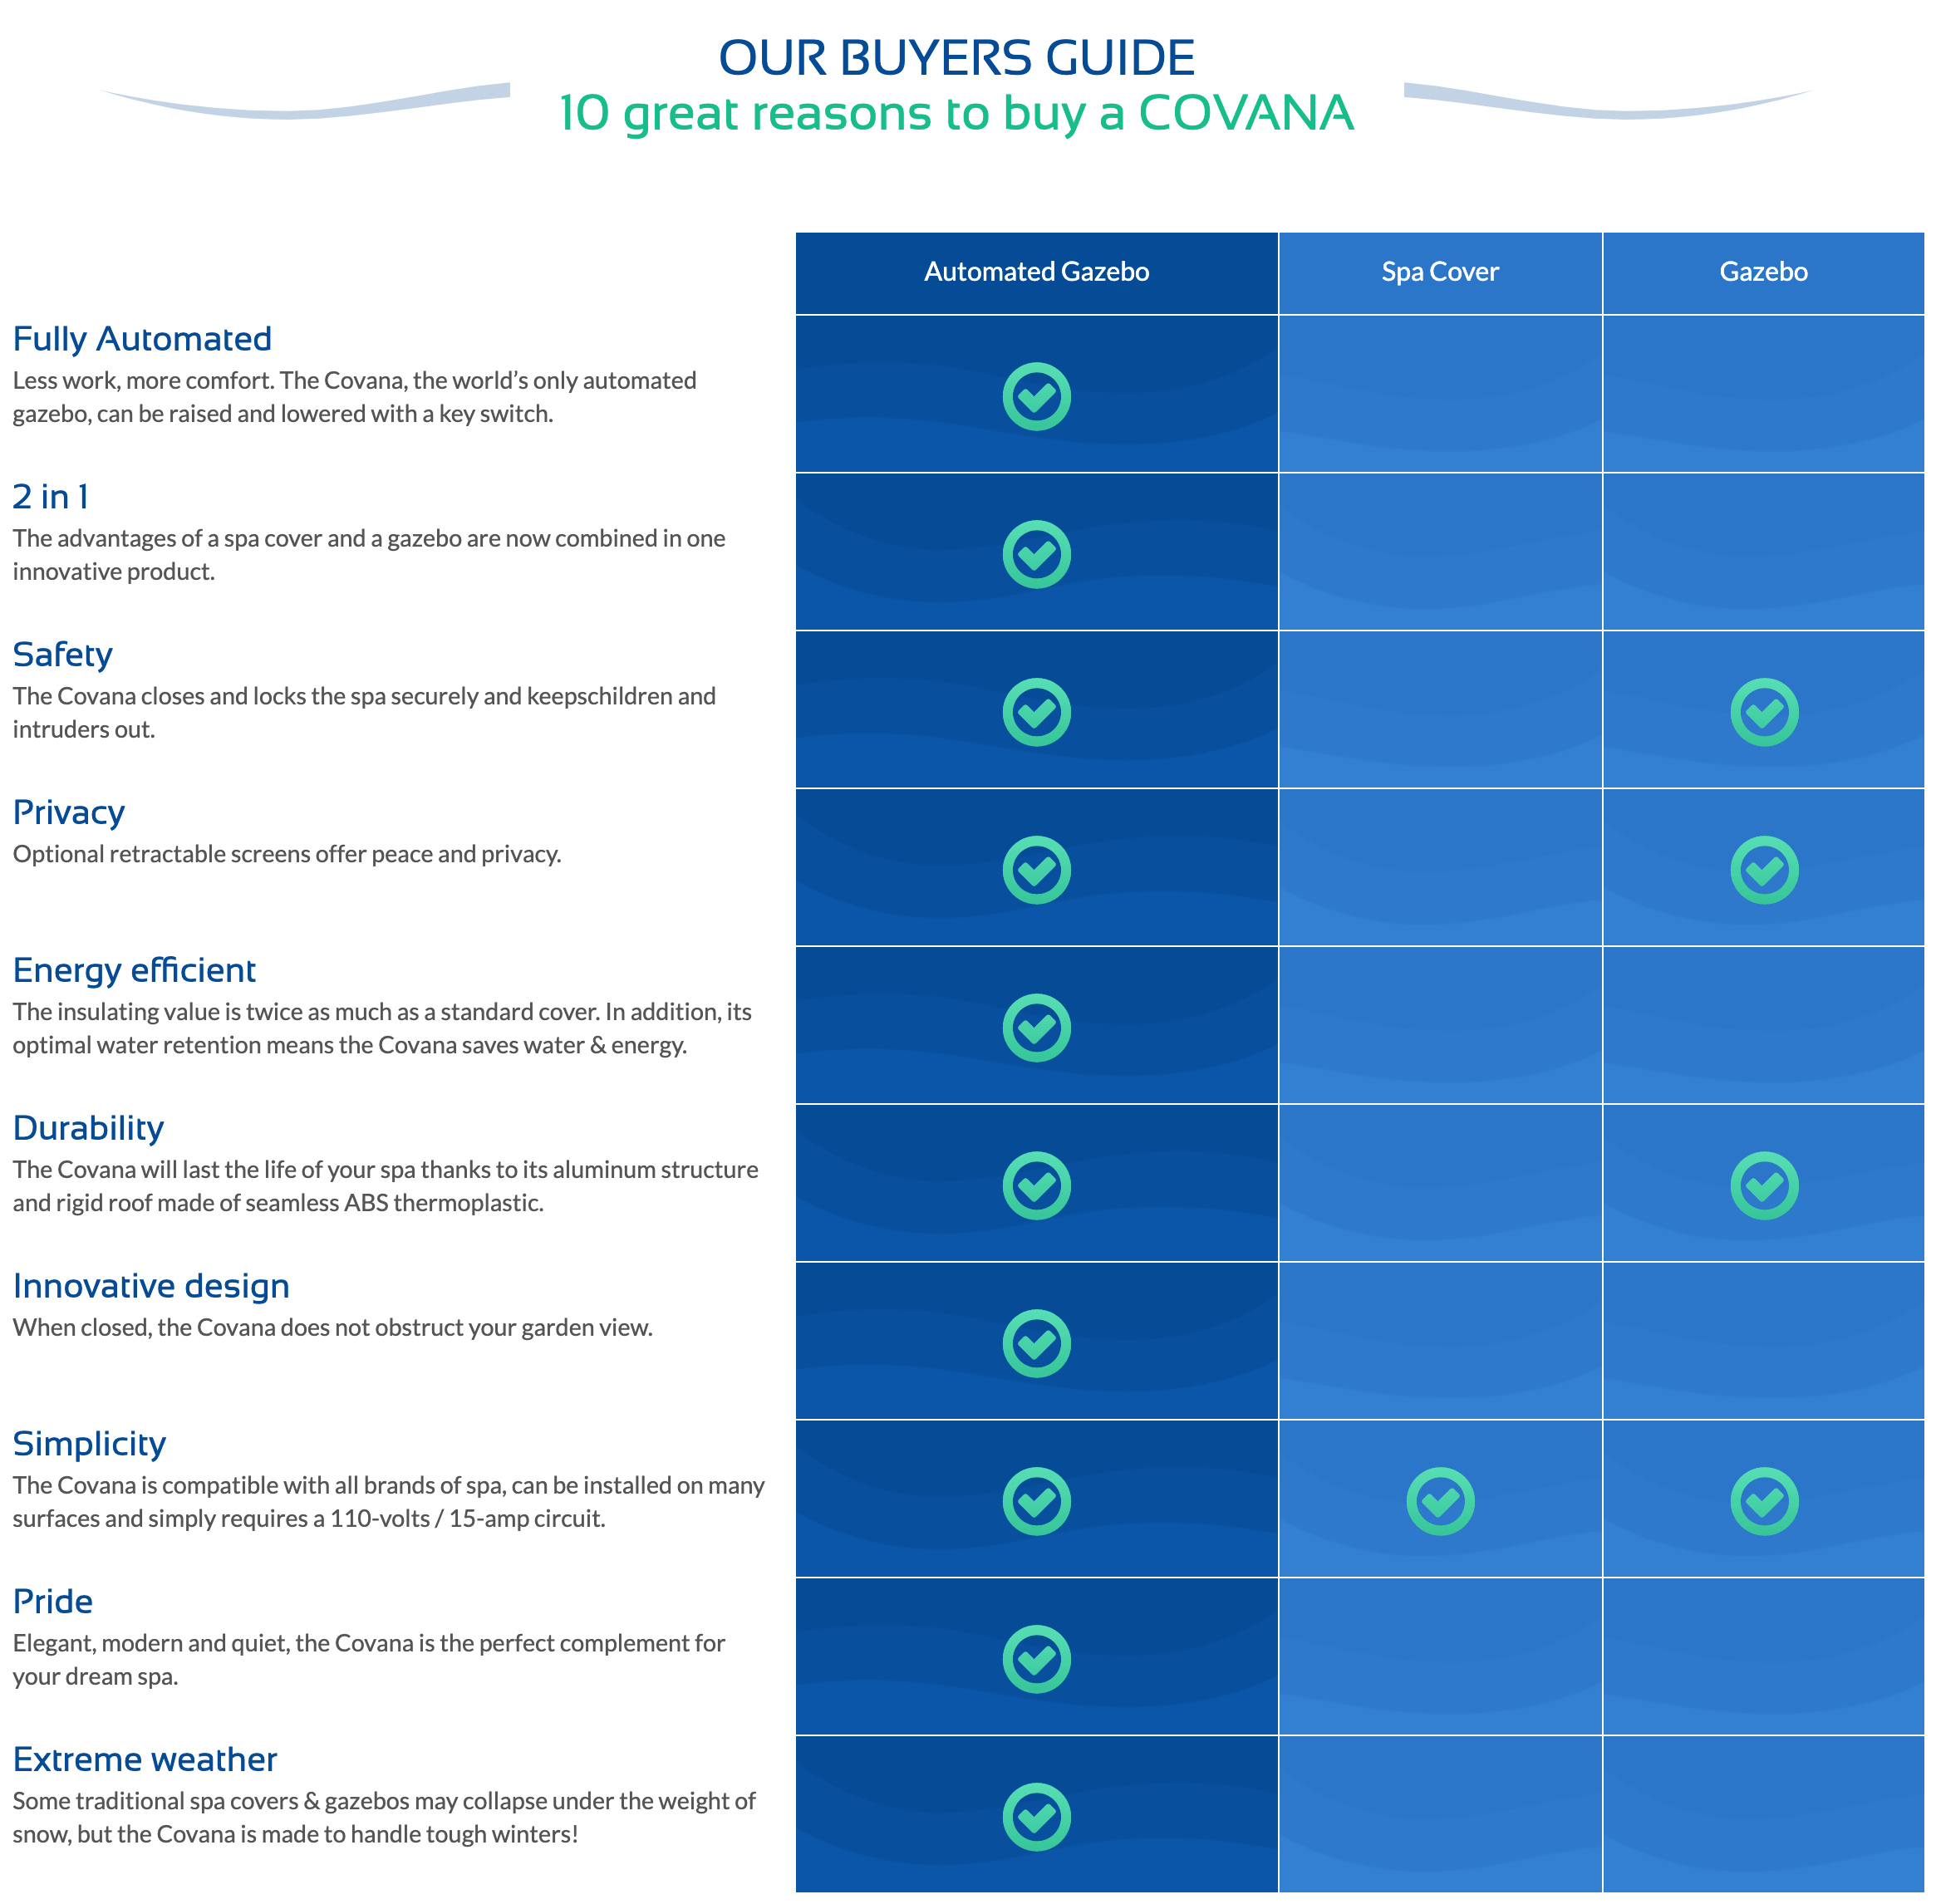 Covana Buyers Guide chart